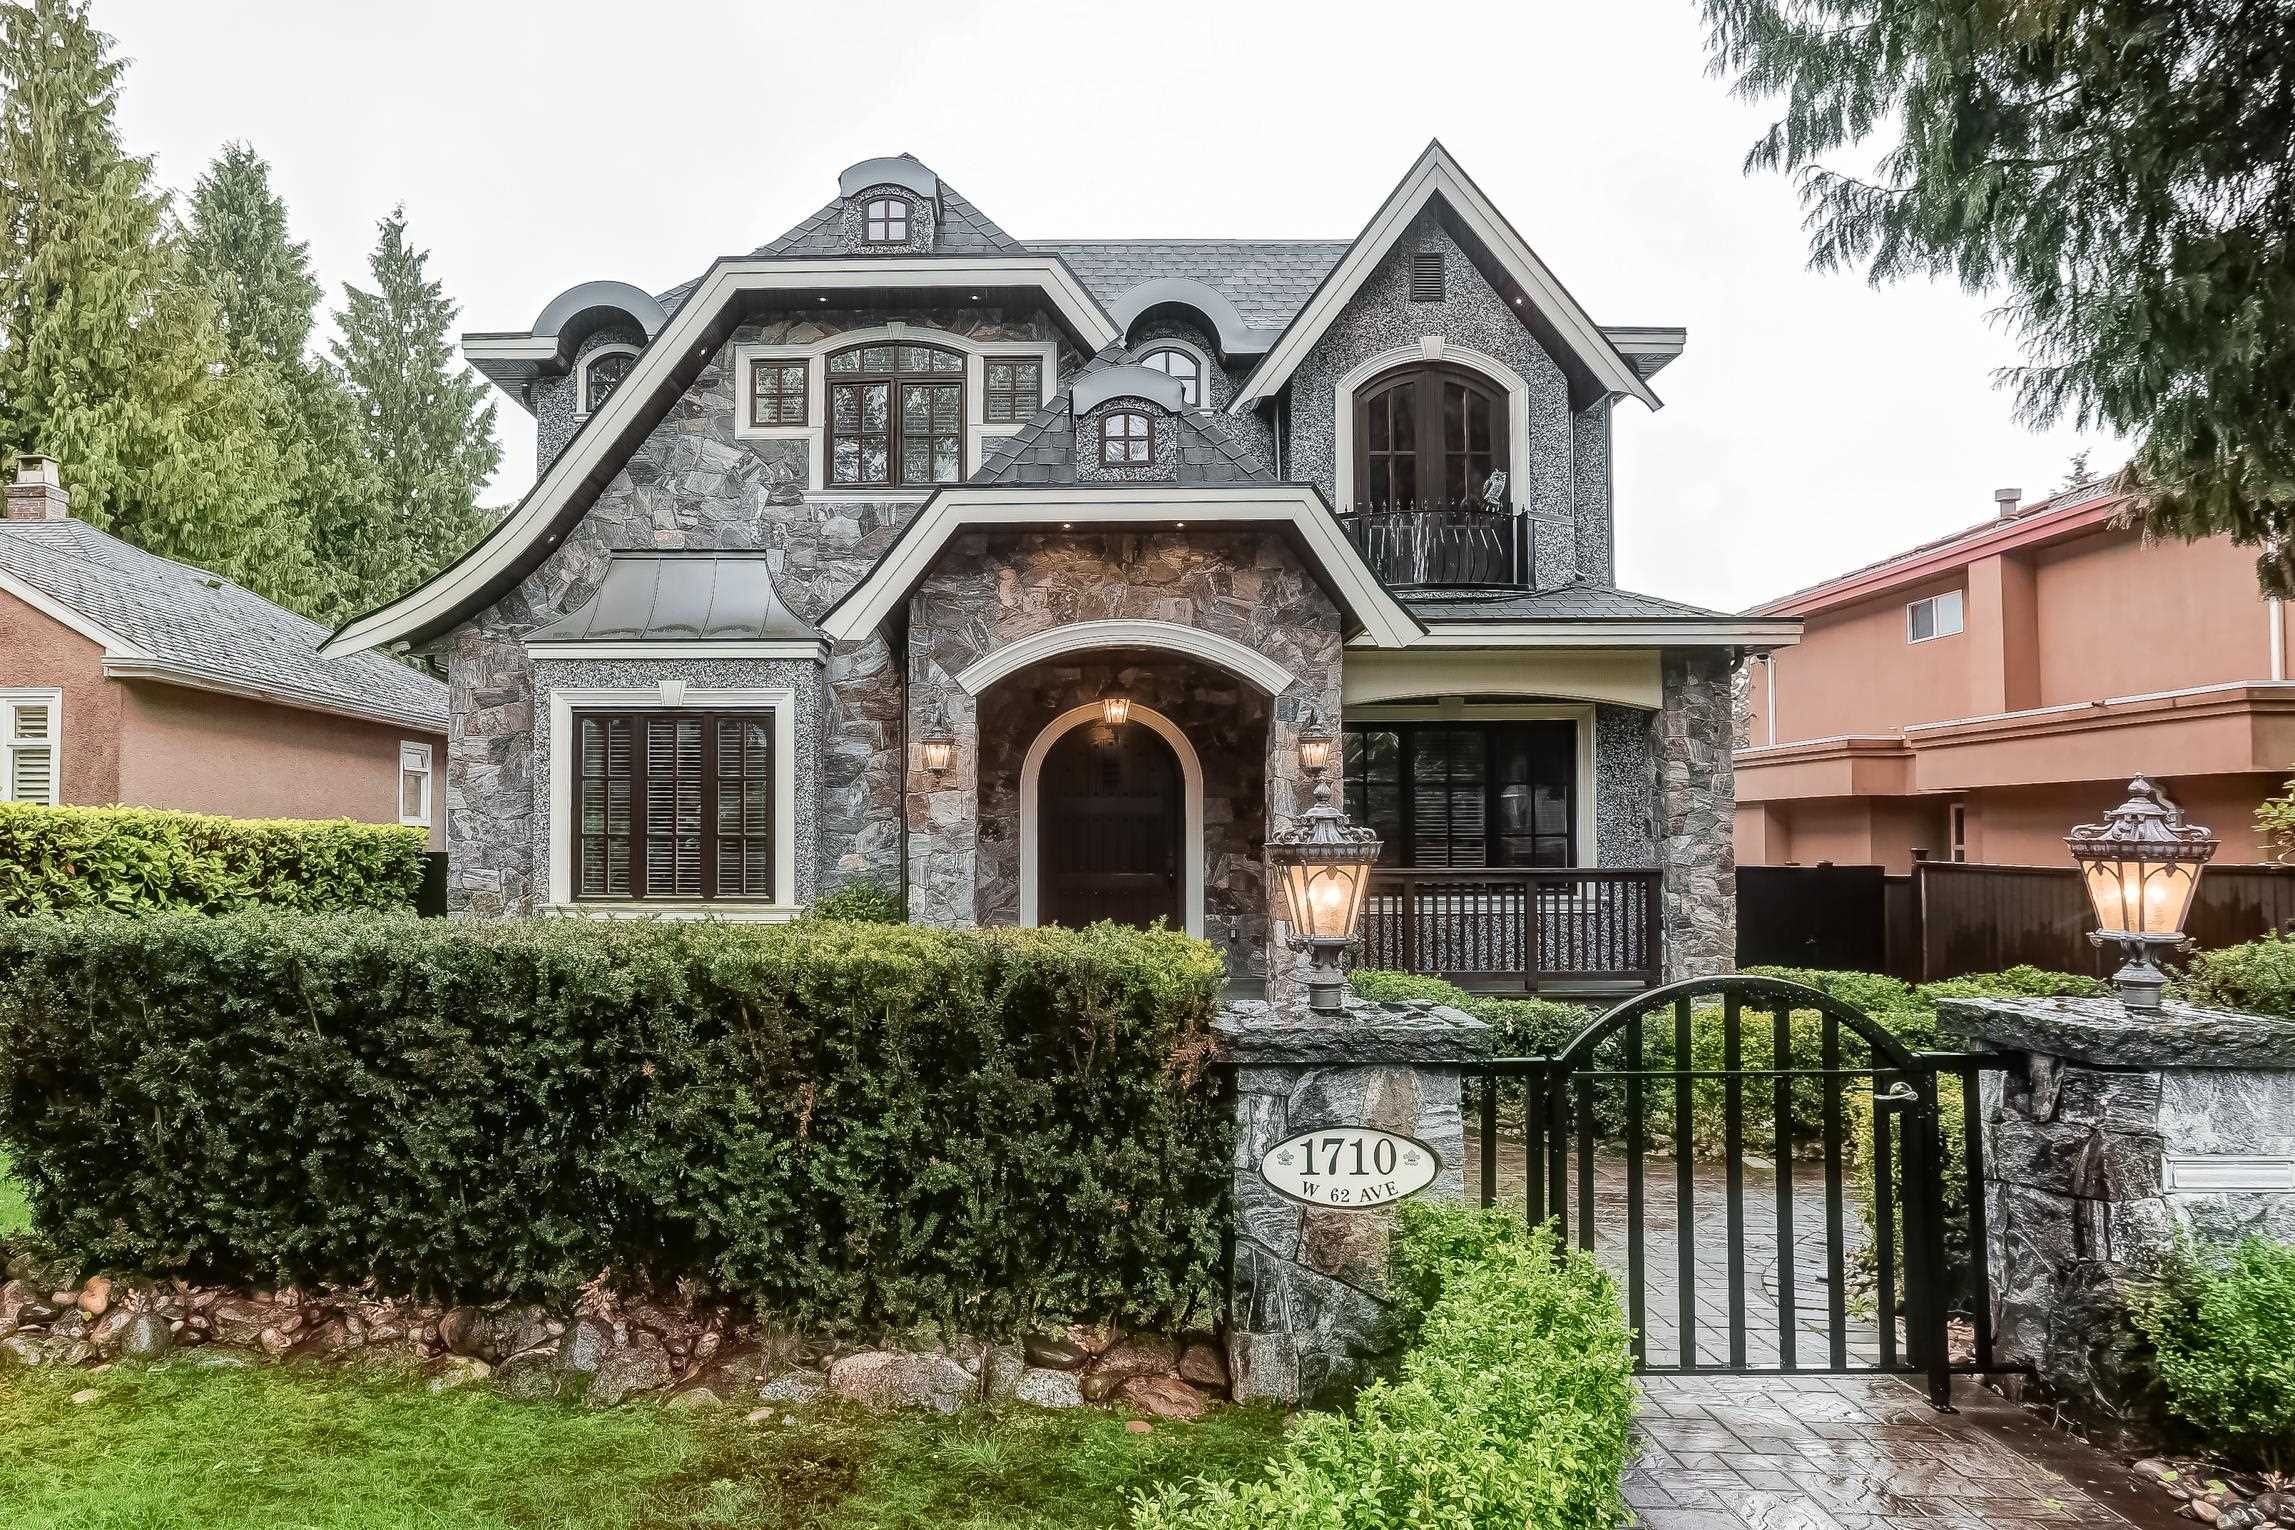 Main Photo: 1710 W 62ND Avenue in Vancouver: South Granville House for sale (Vancouver West)  : MLS®# R2618310